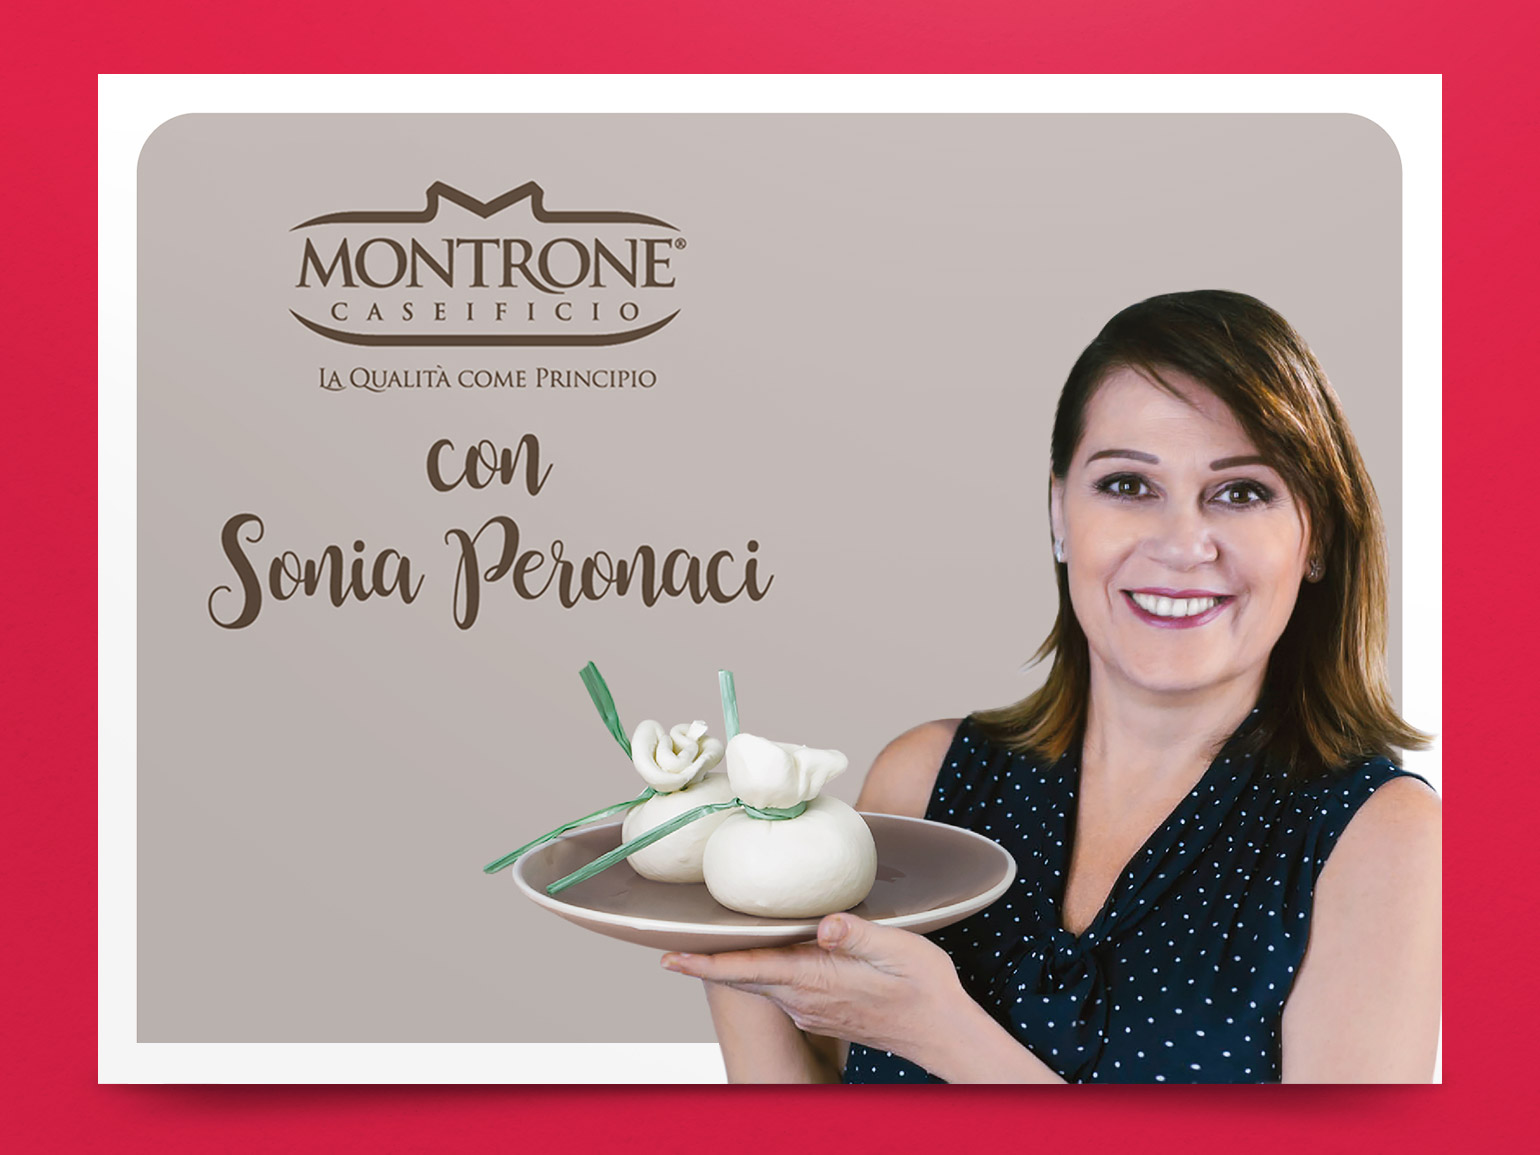 Mad Fever - Montrone Sonia Peronaci show cooking